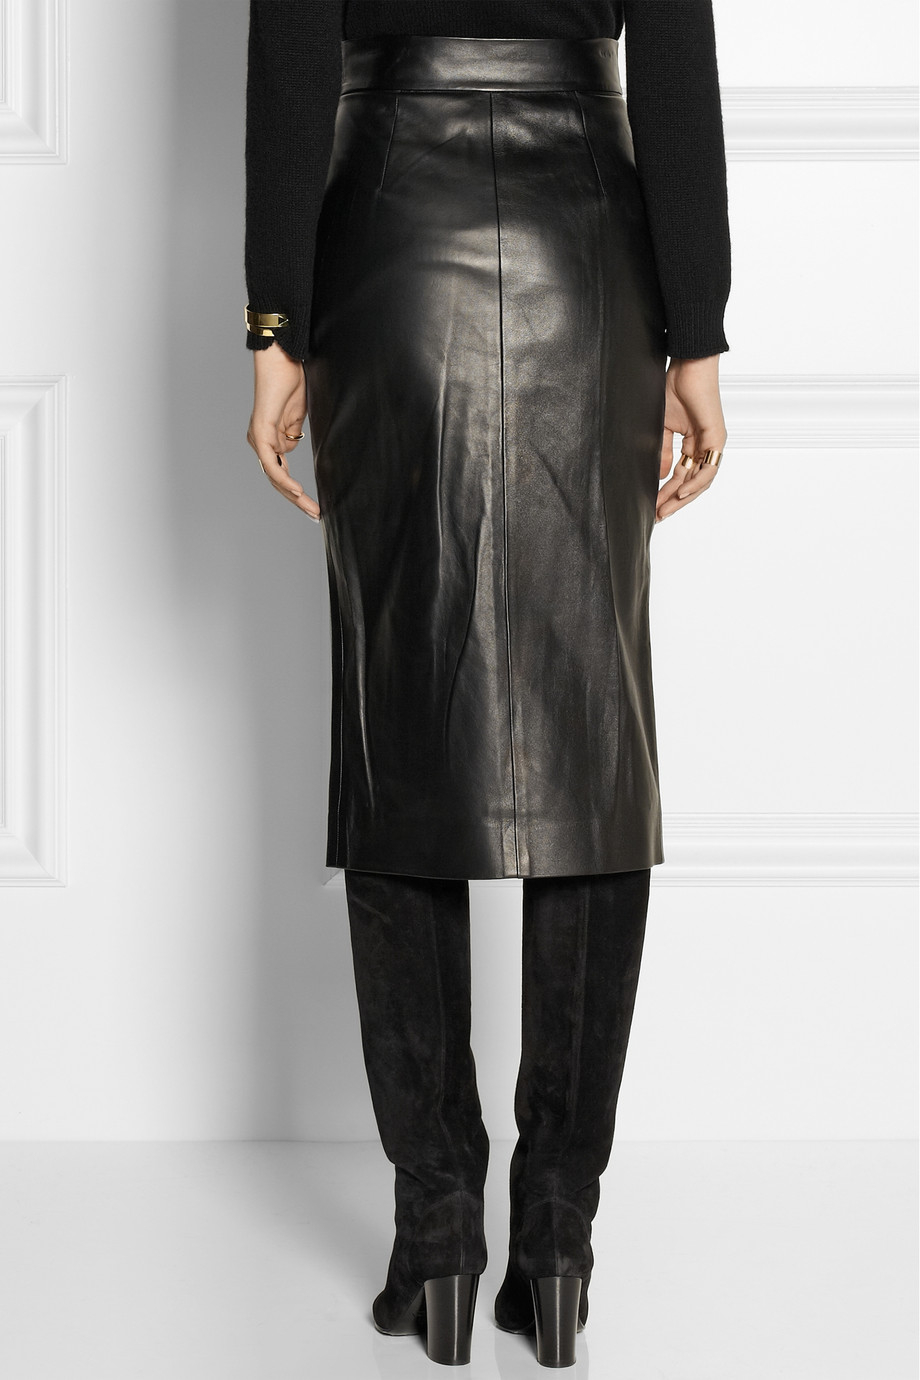 Tamara mellon Doublefaced Leather Wrap Skirt in Black | Lyst